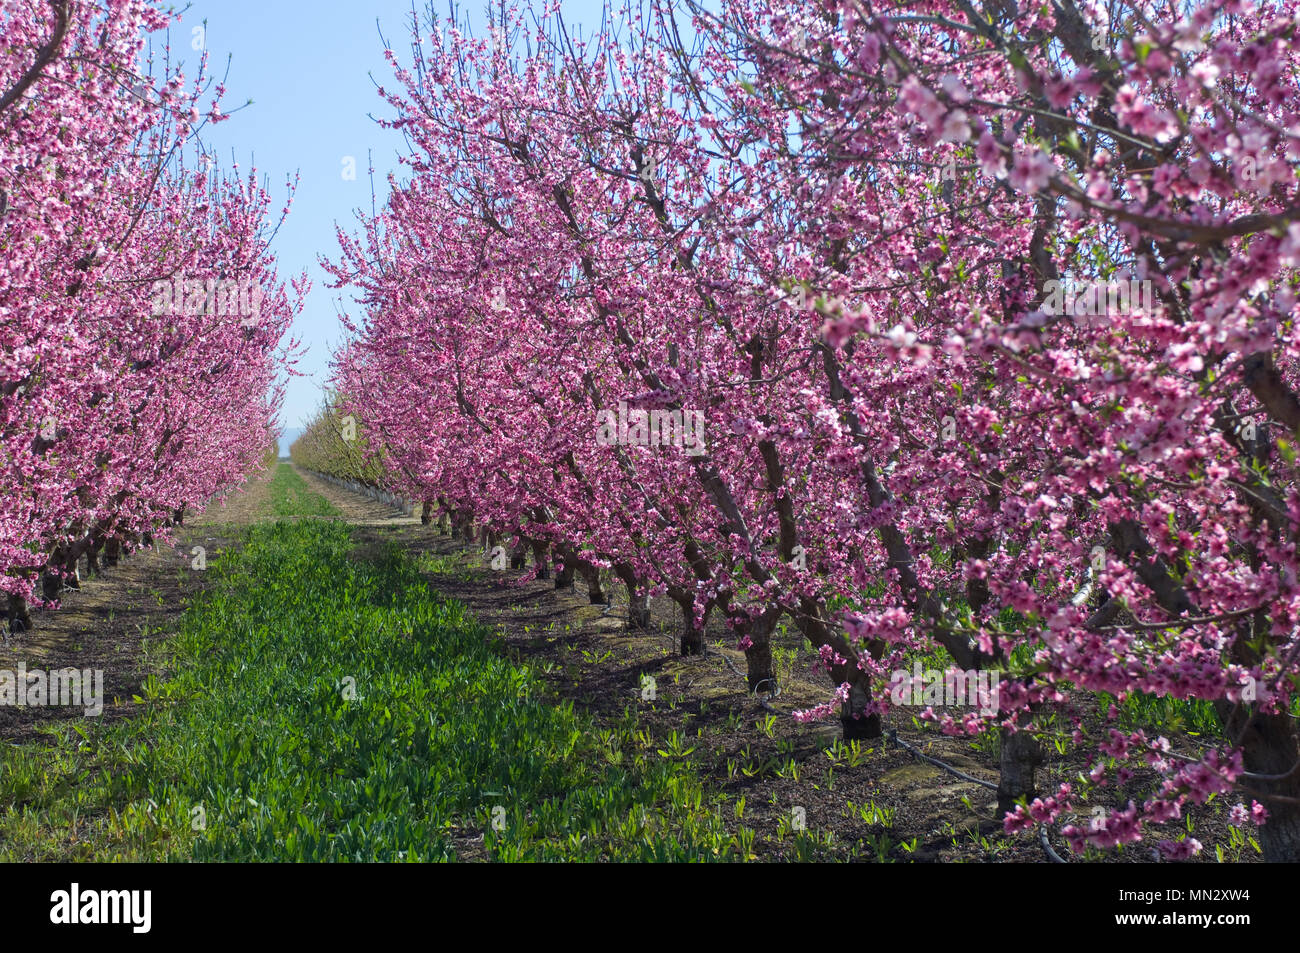 Almond Trees Covered In Blooming Pink Flowers Grow In Rows In The